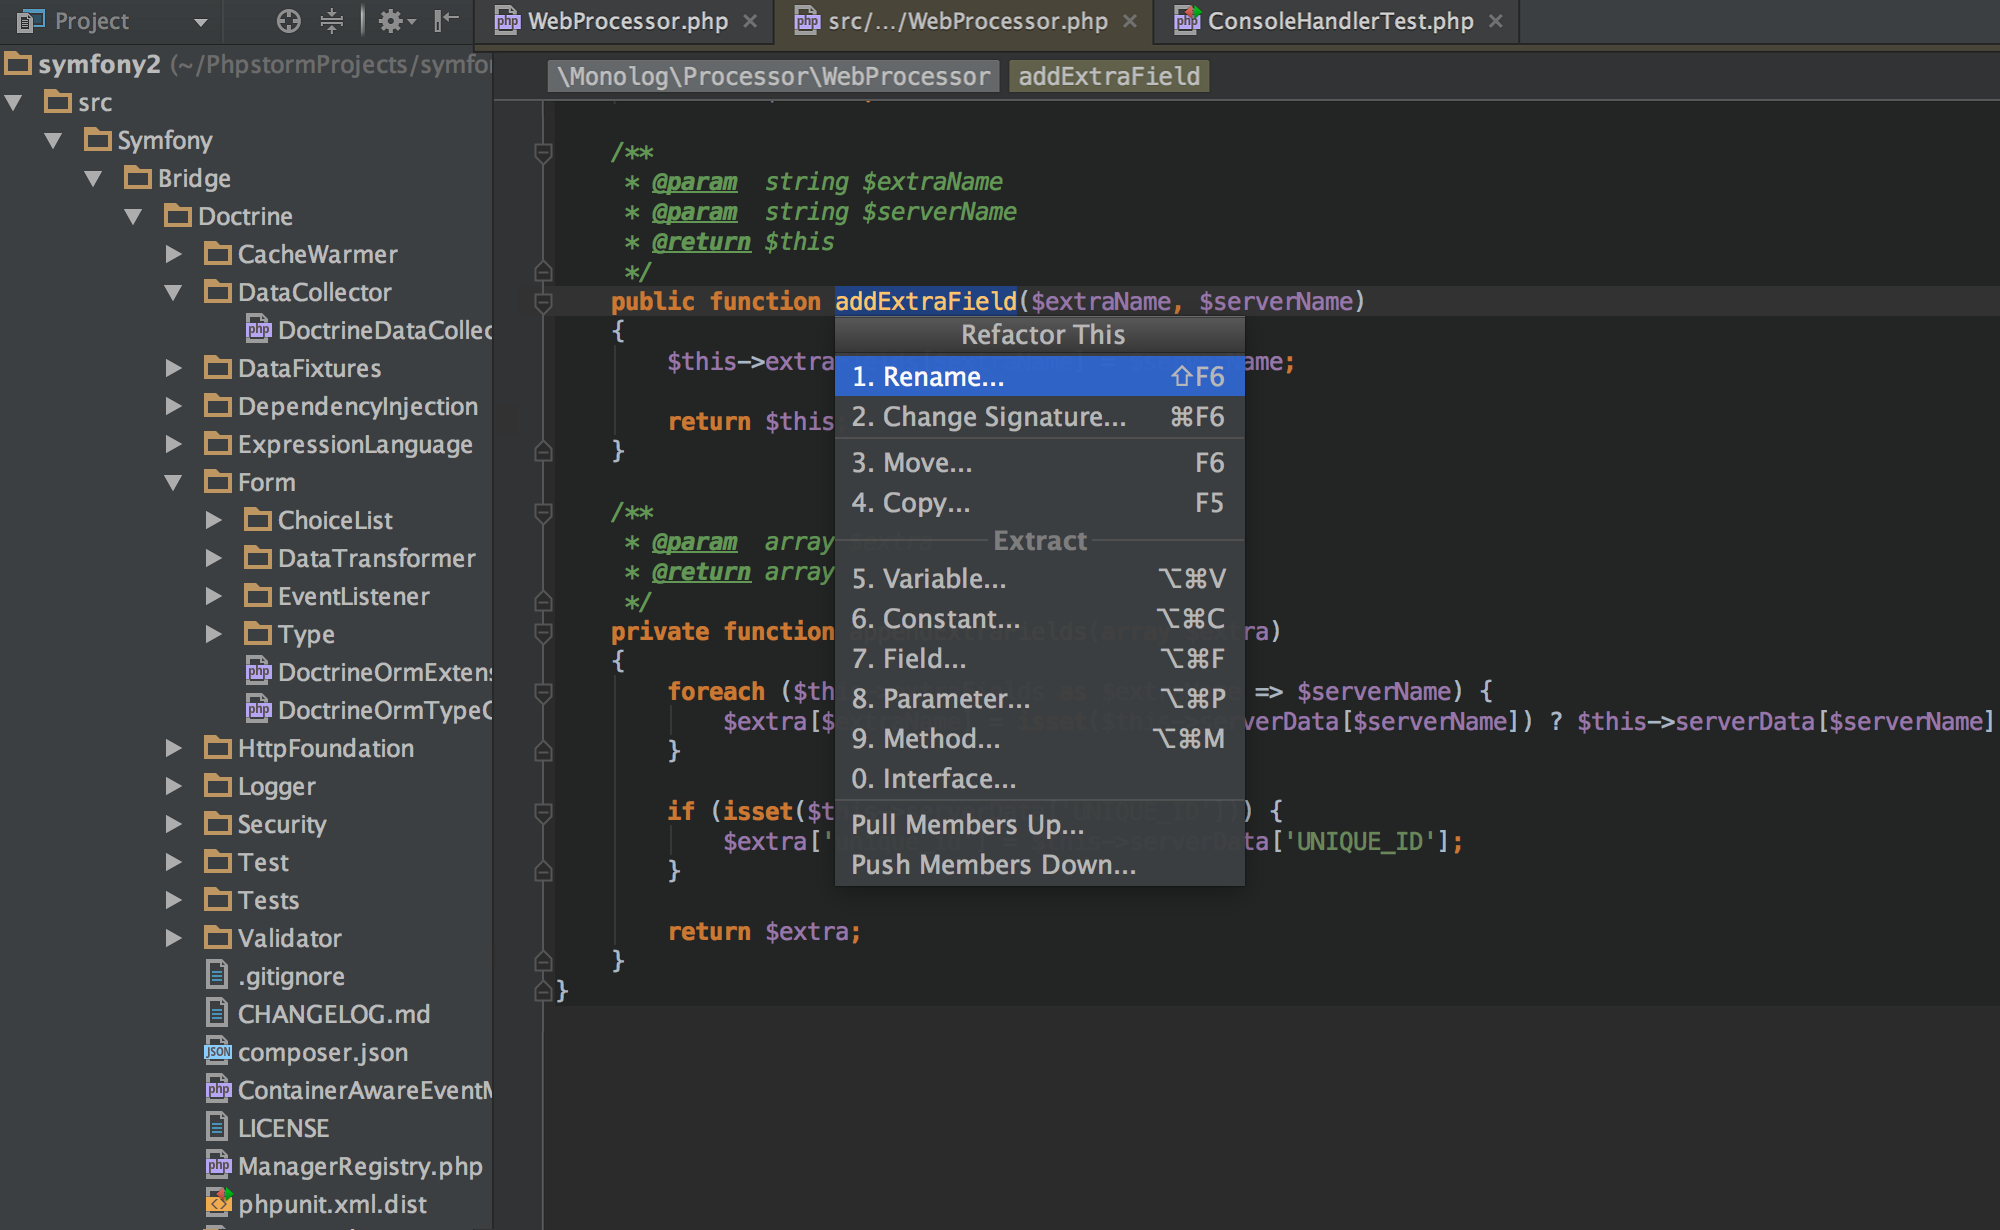 JetBrains PhpStorm 2019.2.5 Crack + License Key Download